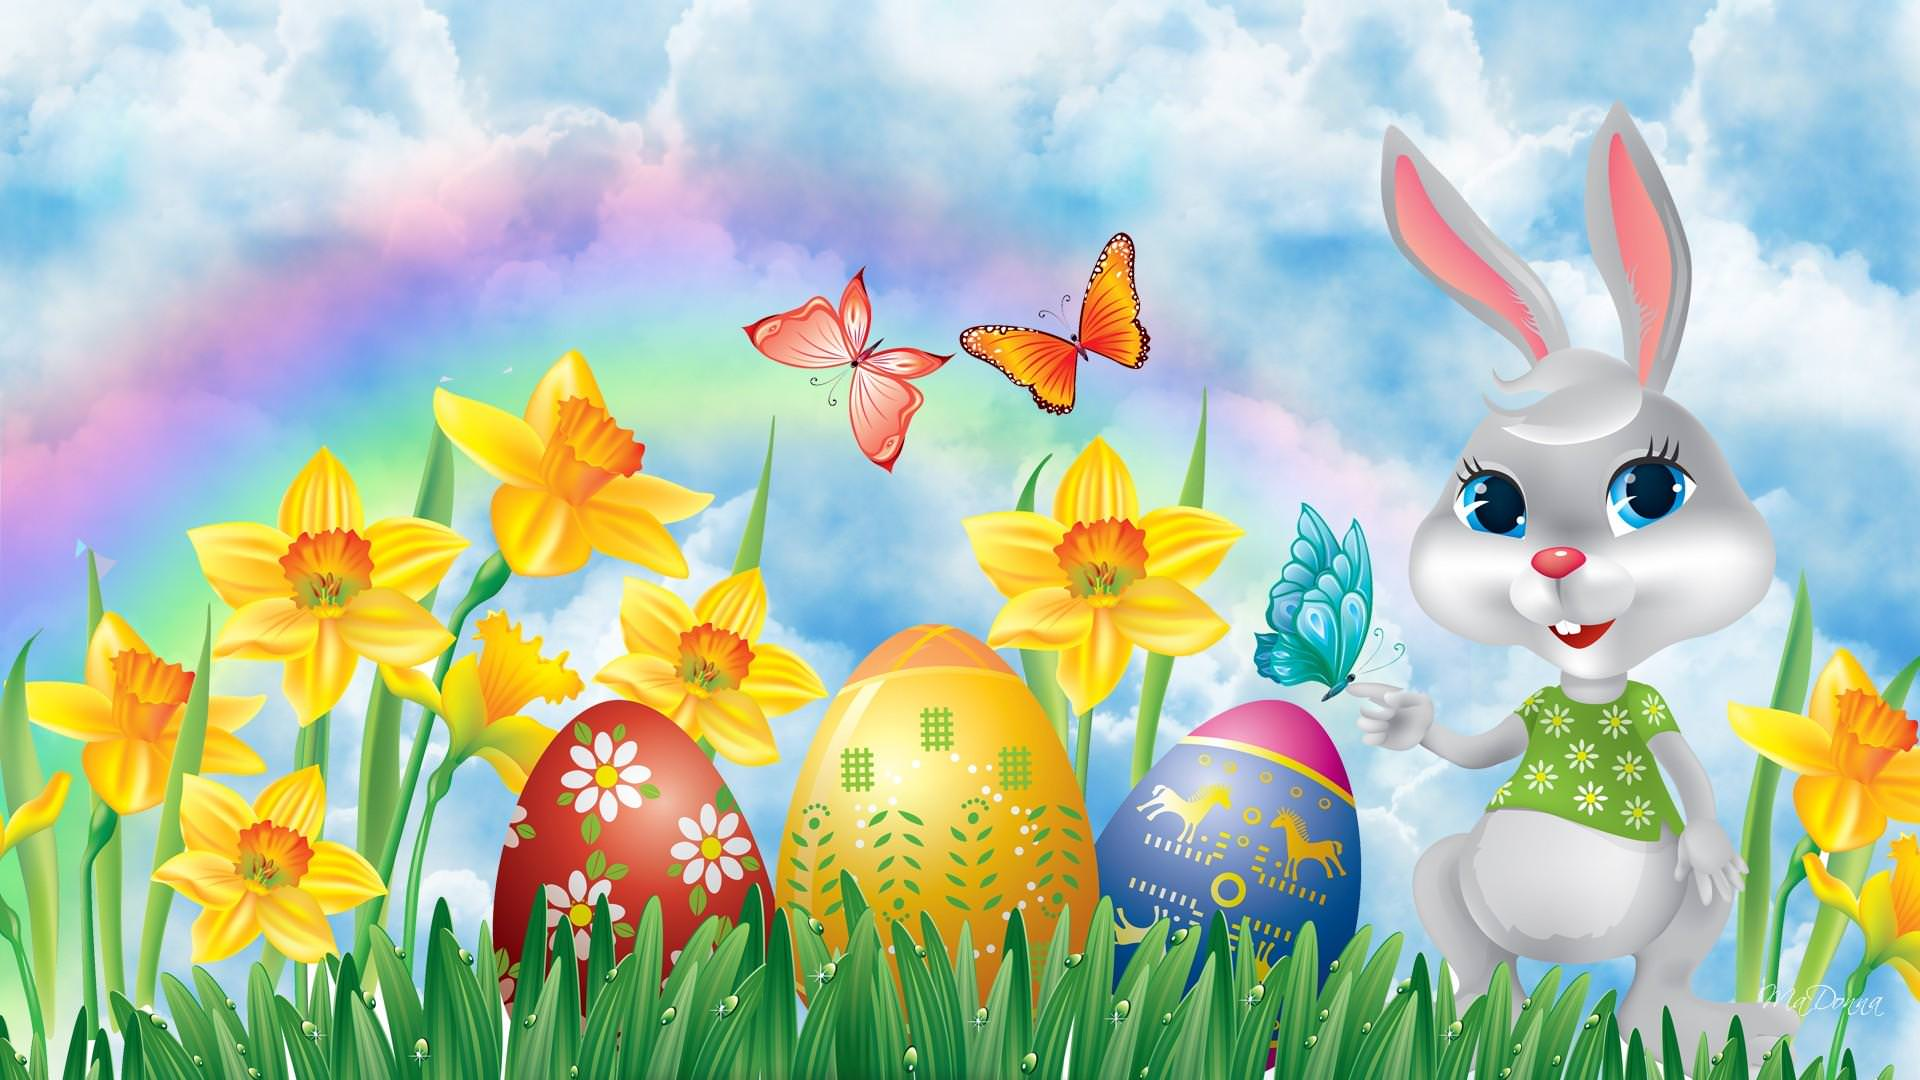 Easter Bunny with Eggs & Daffodils Wallpaper